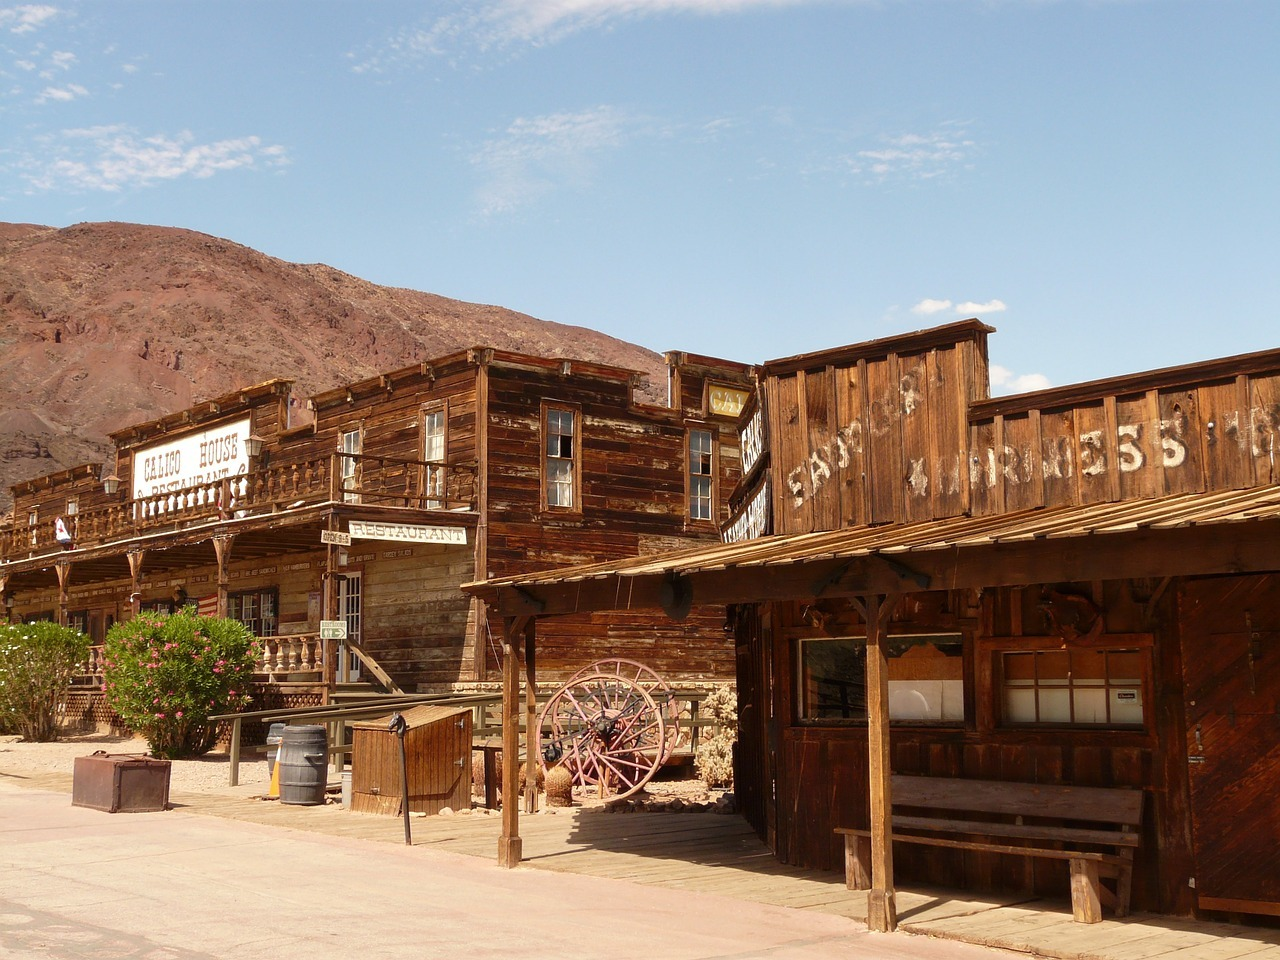 Calico-ghost-town.jpg